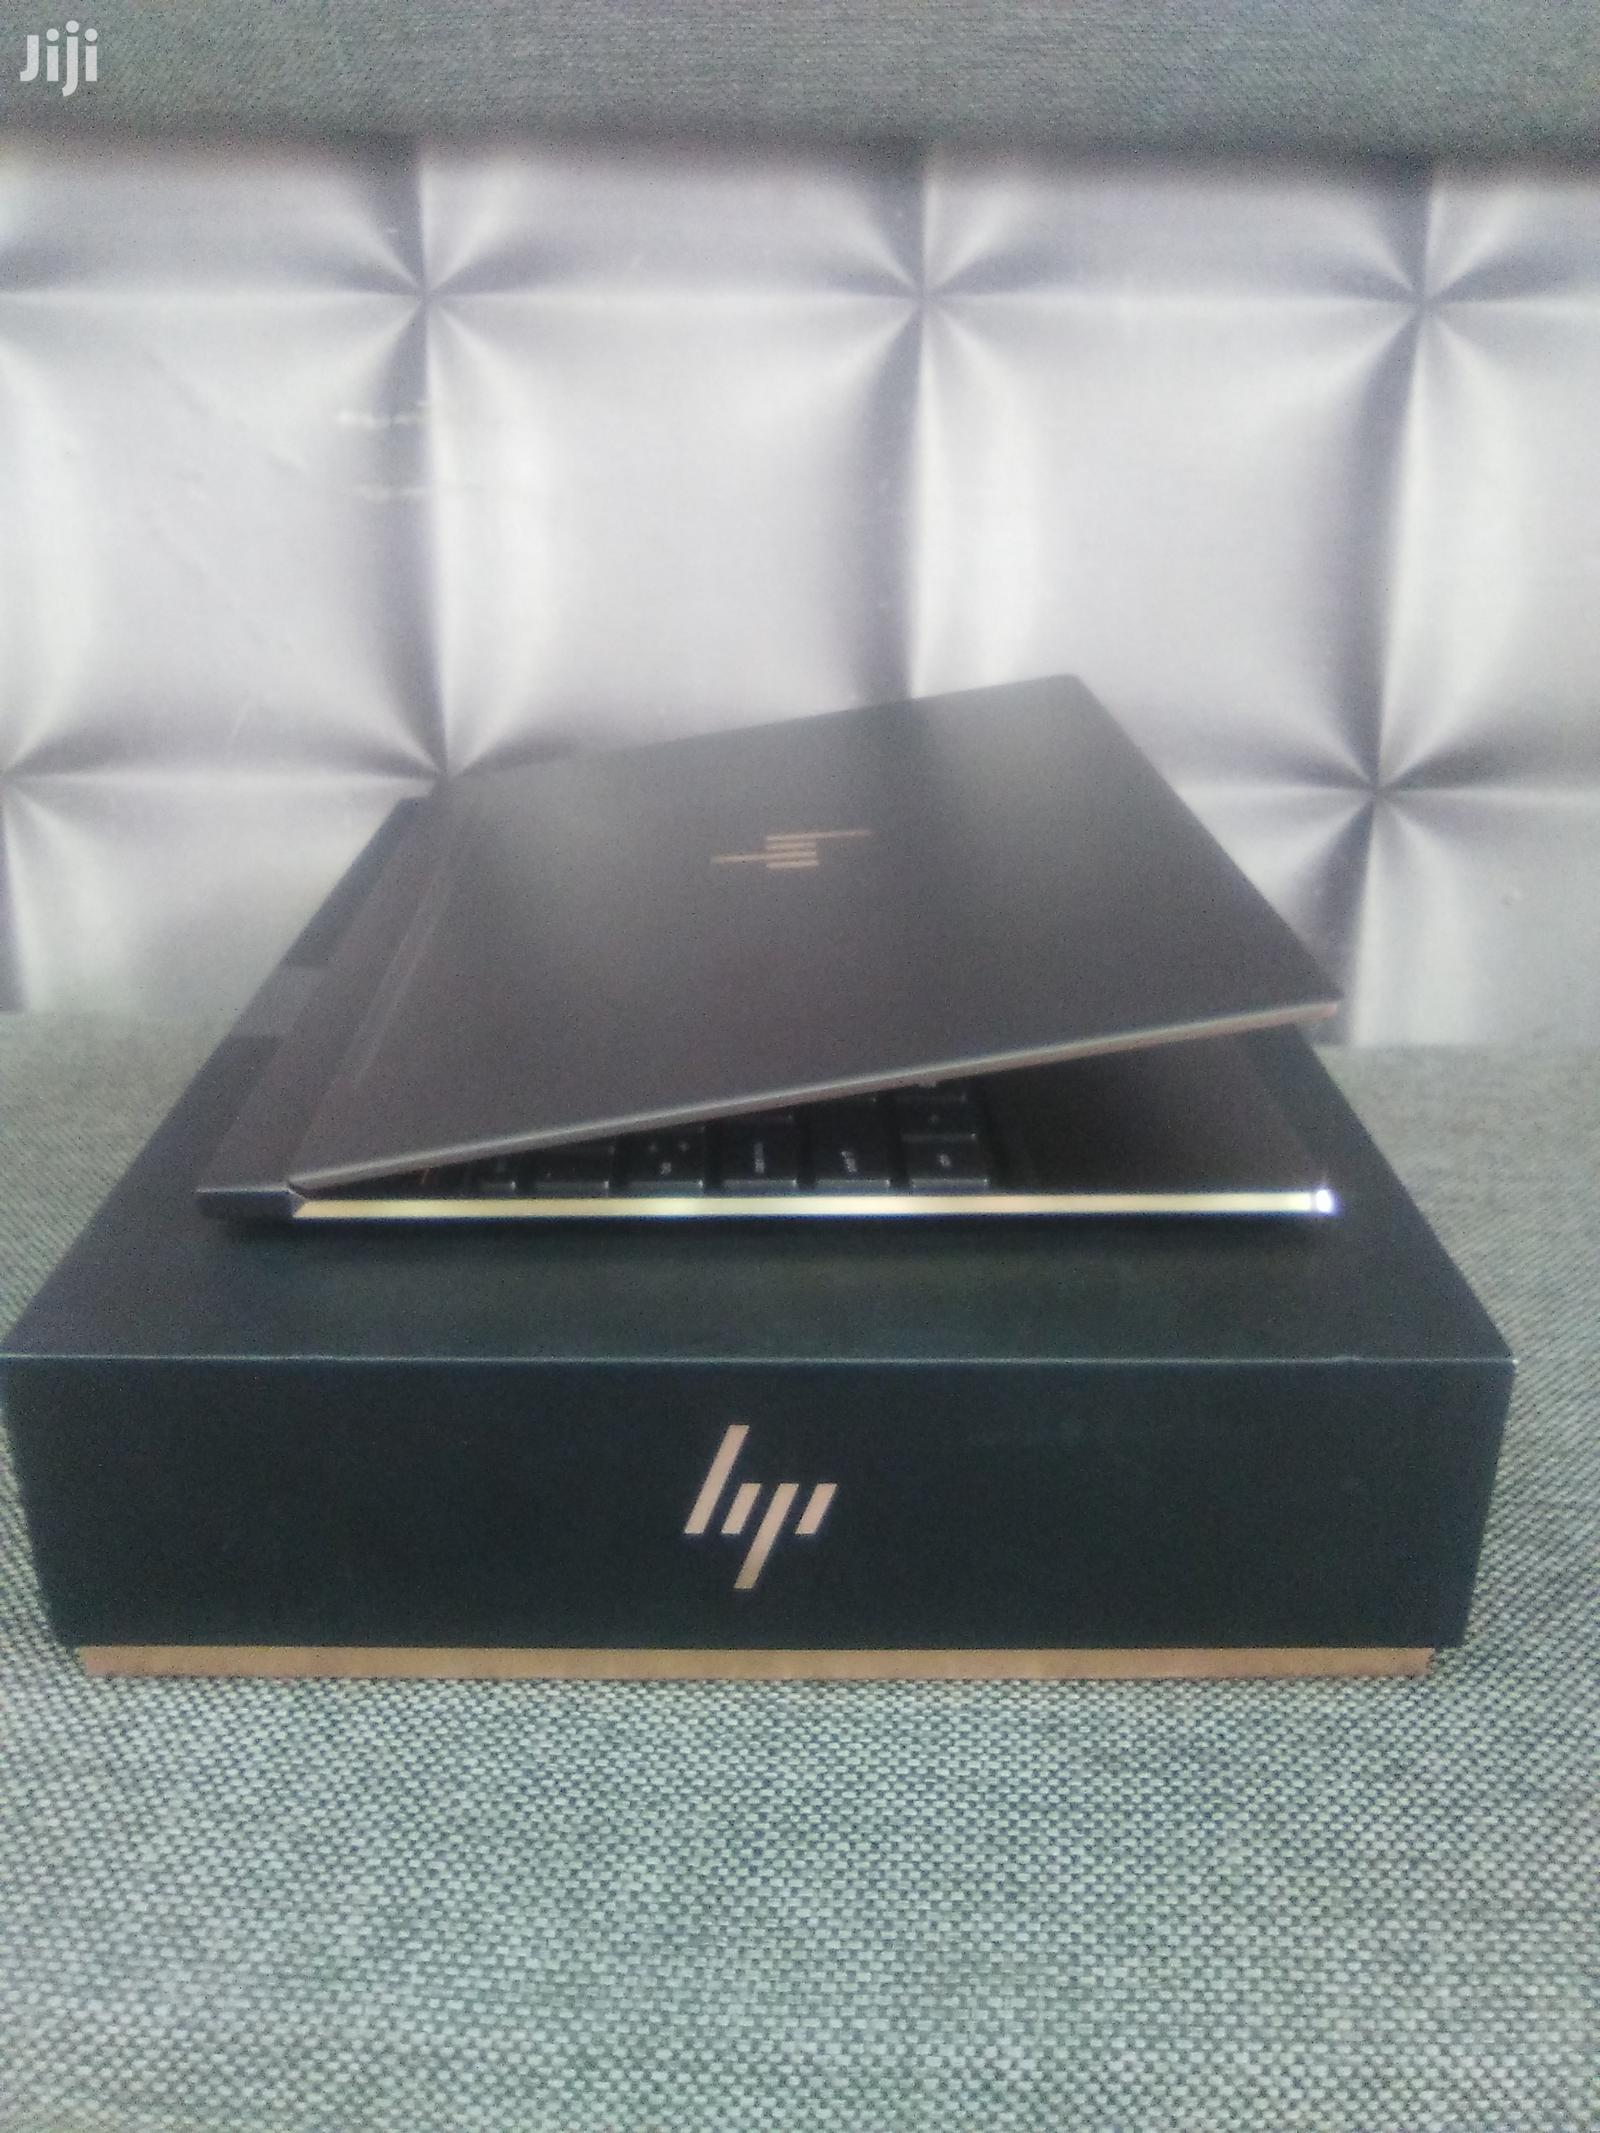 Laptop HP Spectre 13 8GB Intel Core I7 SSD 256GB   Laptops & Computers for sale in Ikeja, Lagos State, Nigeria